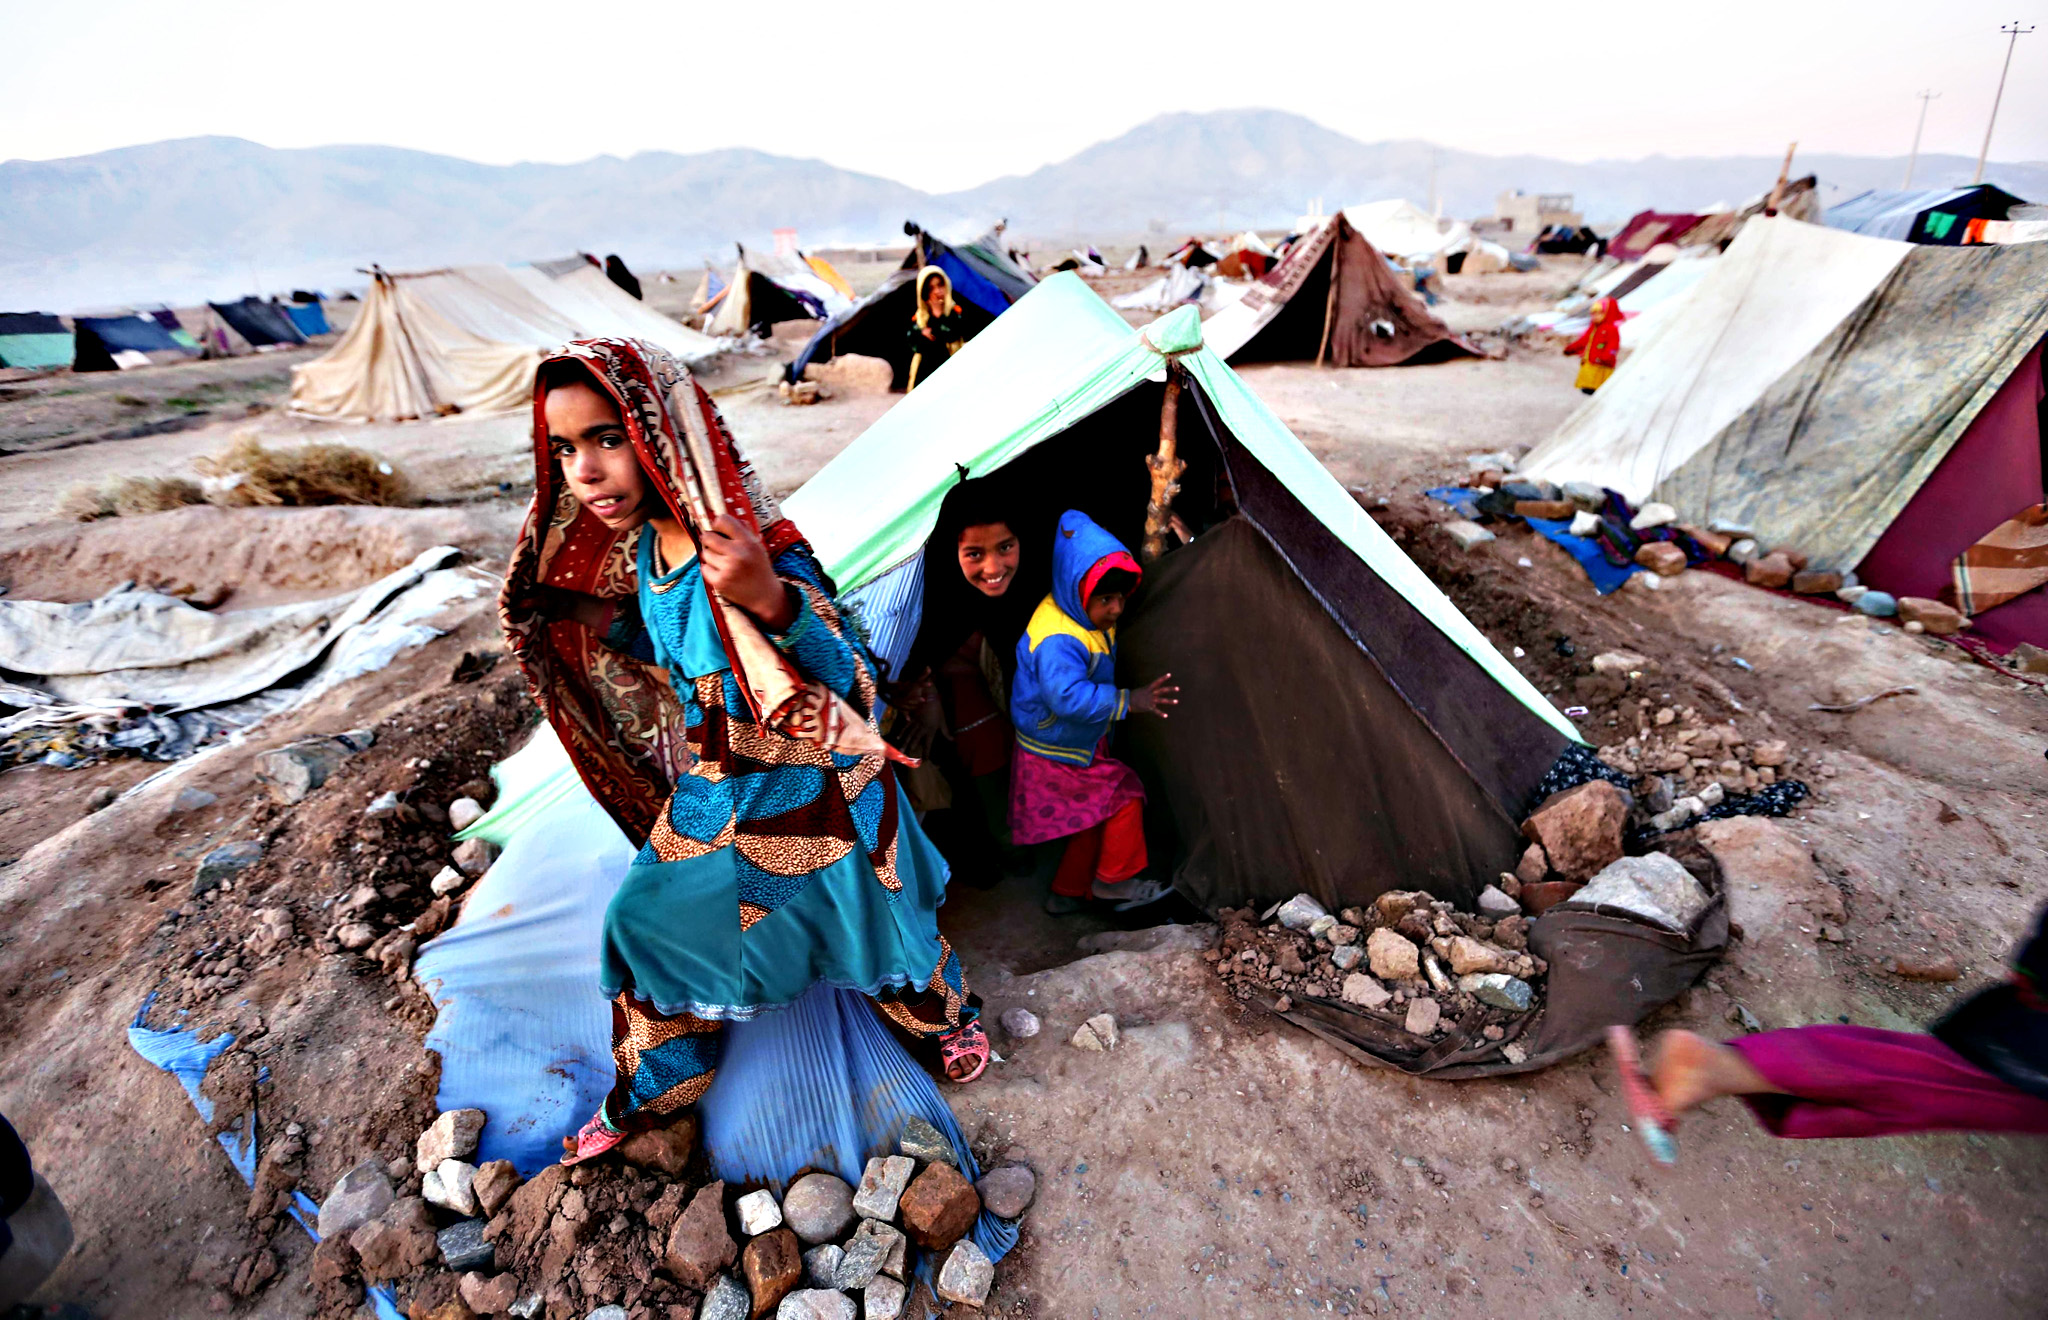 Afghan children displaced from Faryab, Badghis and Ghor province, stand outside a temporary shelter at an Internally Displaced Persons (IDPs) camp in Herat, Afghanistan, on Thursday. According to UN Refugee Agency (UNHCR) figures, the number of internally displaced Afghani people was 683,000 by mid-2014, estimating they will amount to 900,000 by the end of 2015.